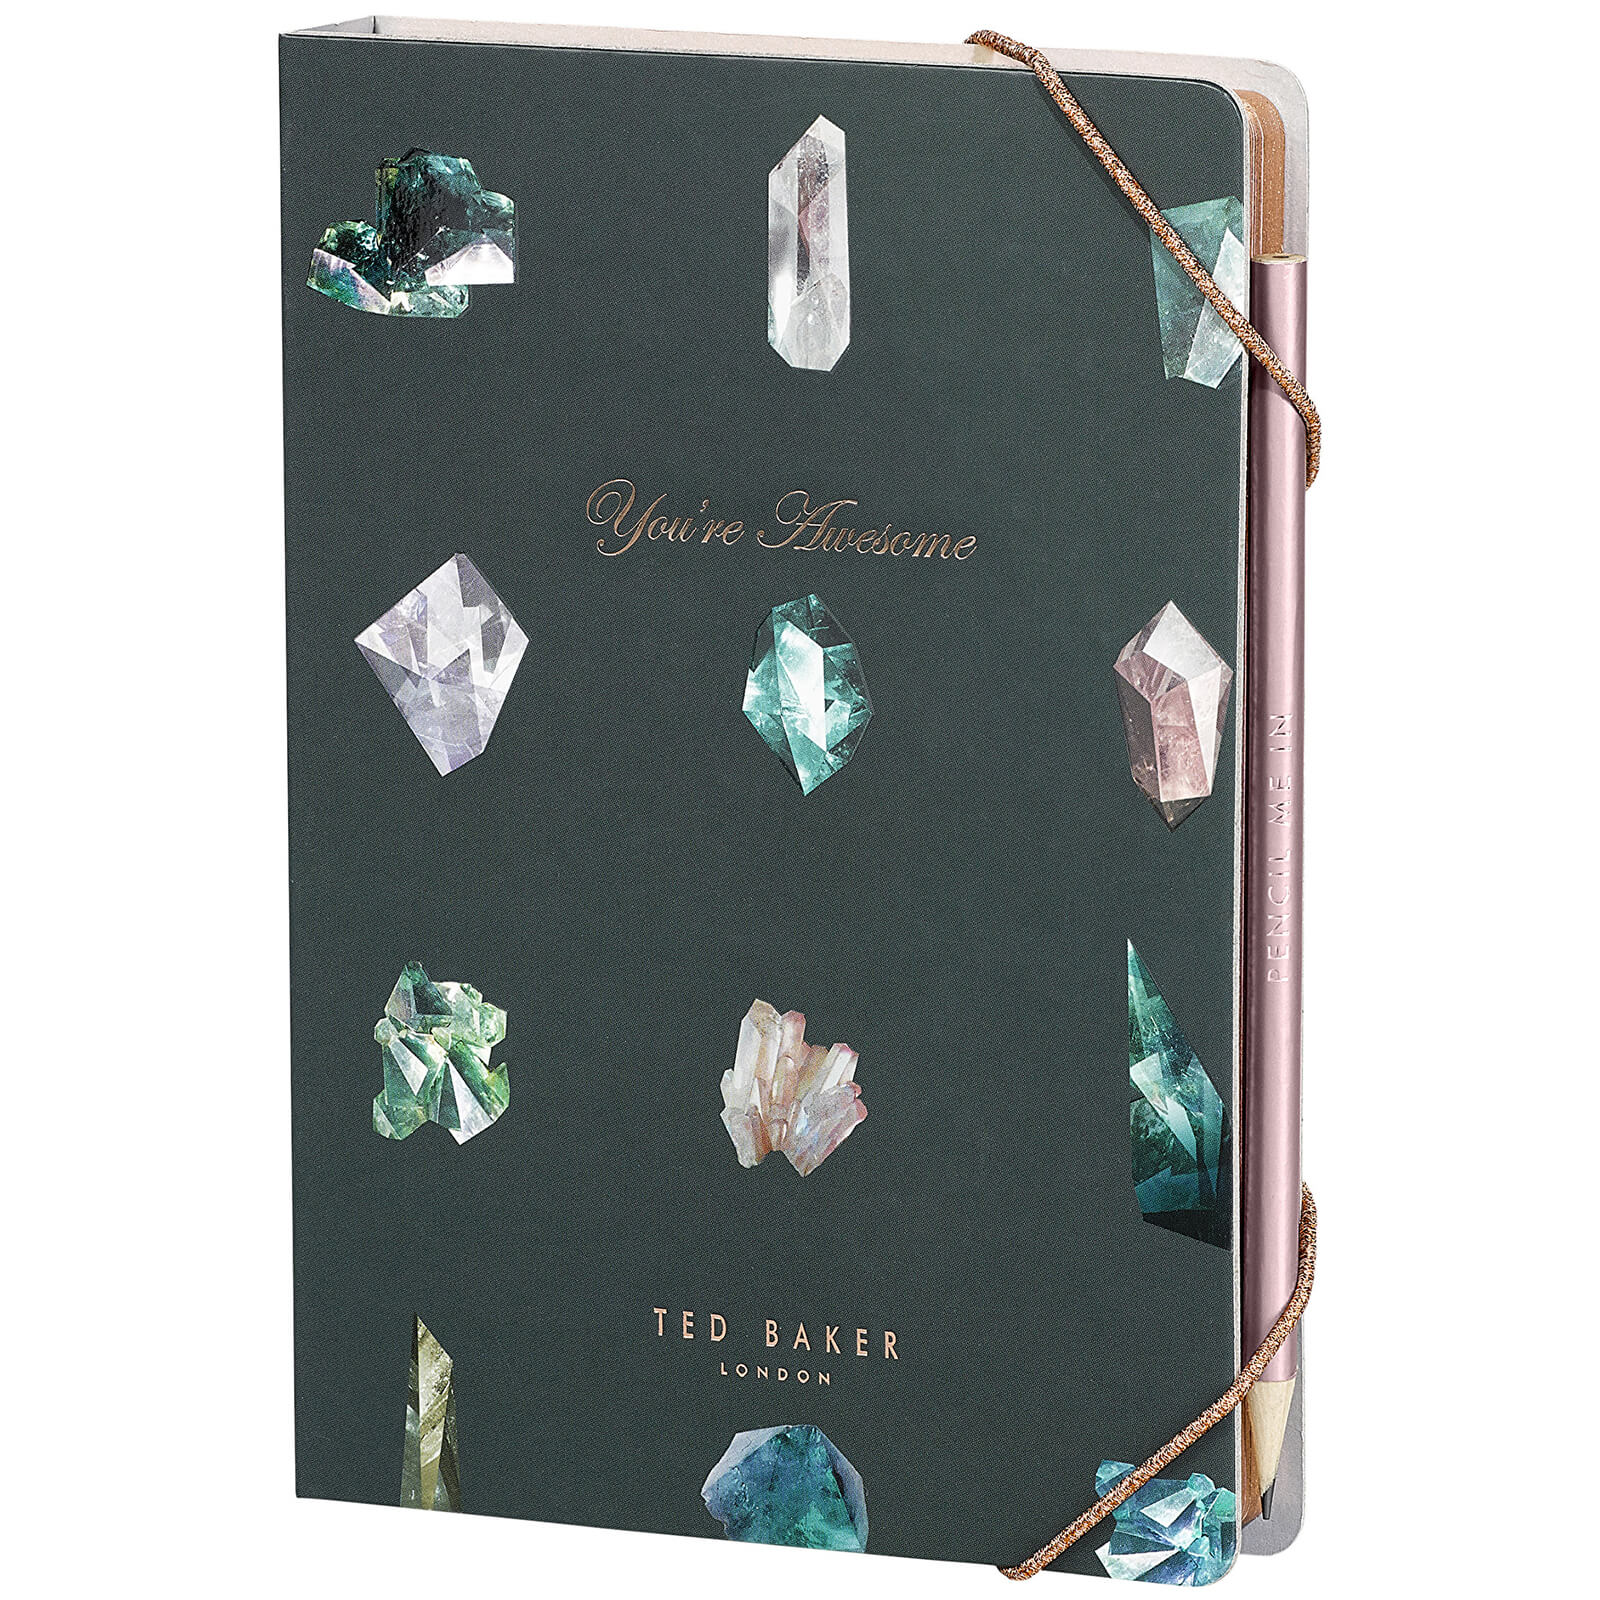 Ted Baker A5 Notebook with Sticky Notes - Linear Gem